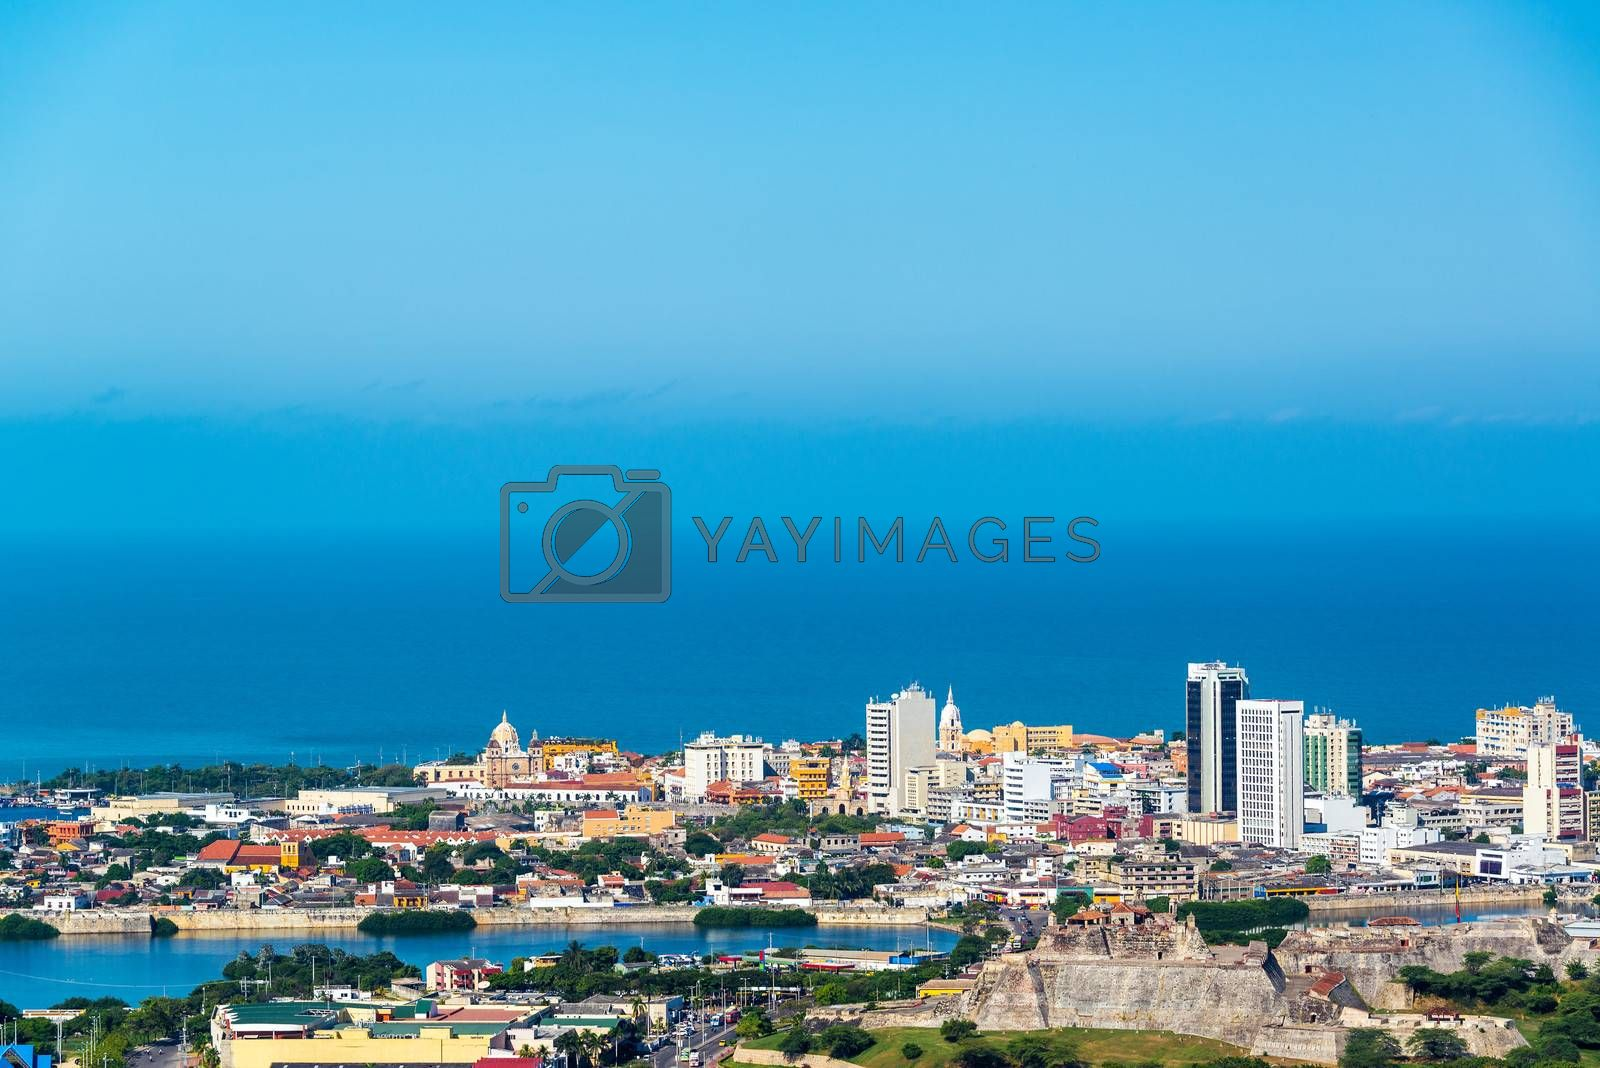 View of the historic center of Cartagena, Colombia with the old town and San Felipe de Barajas fort visible